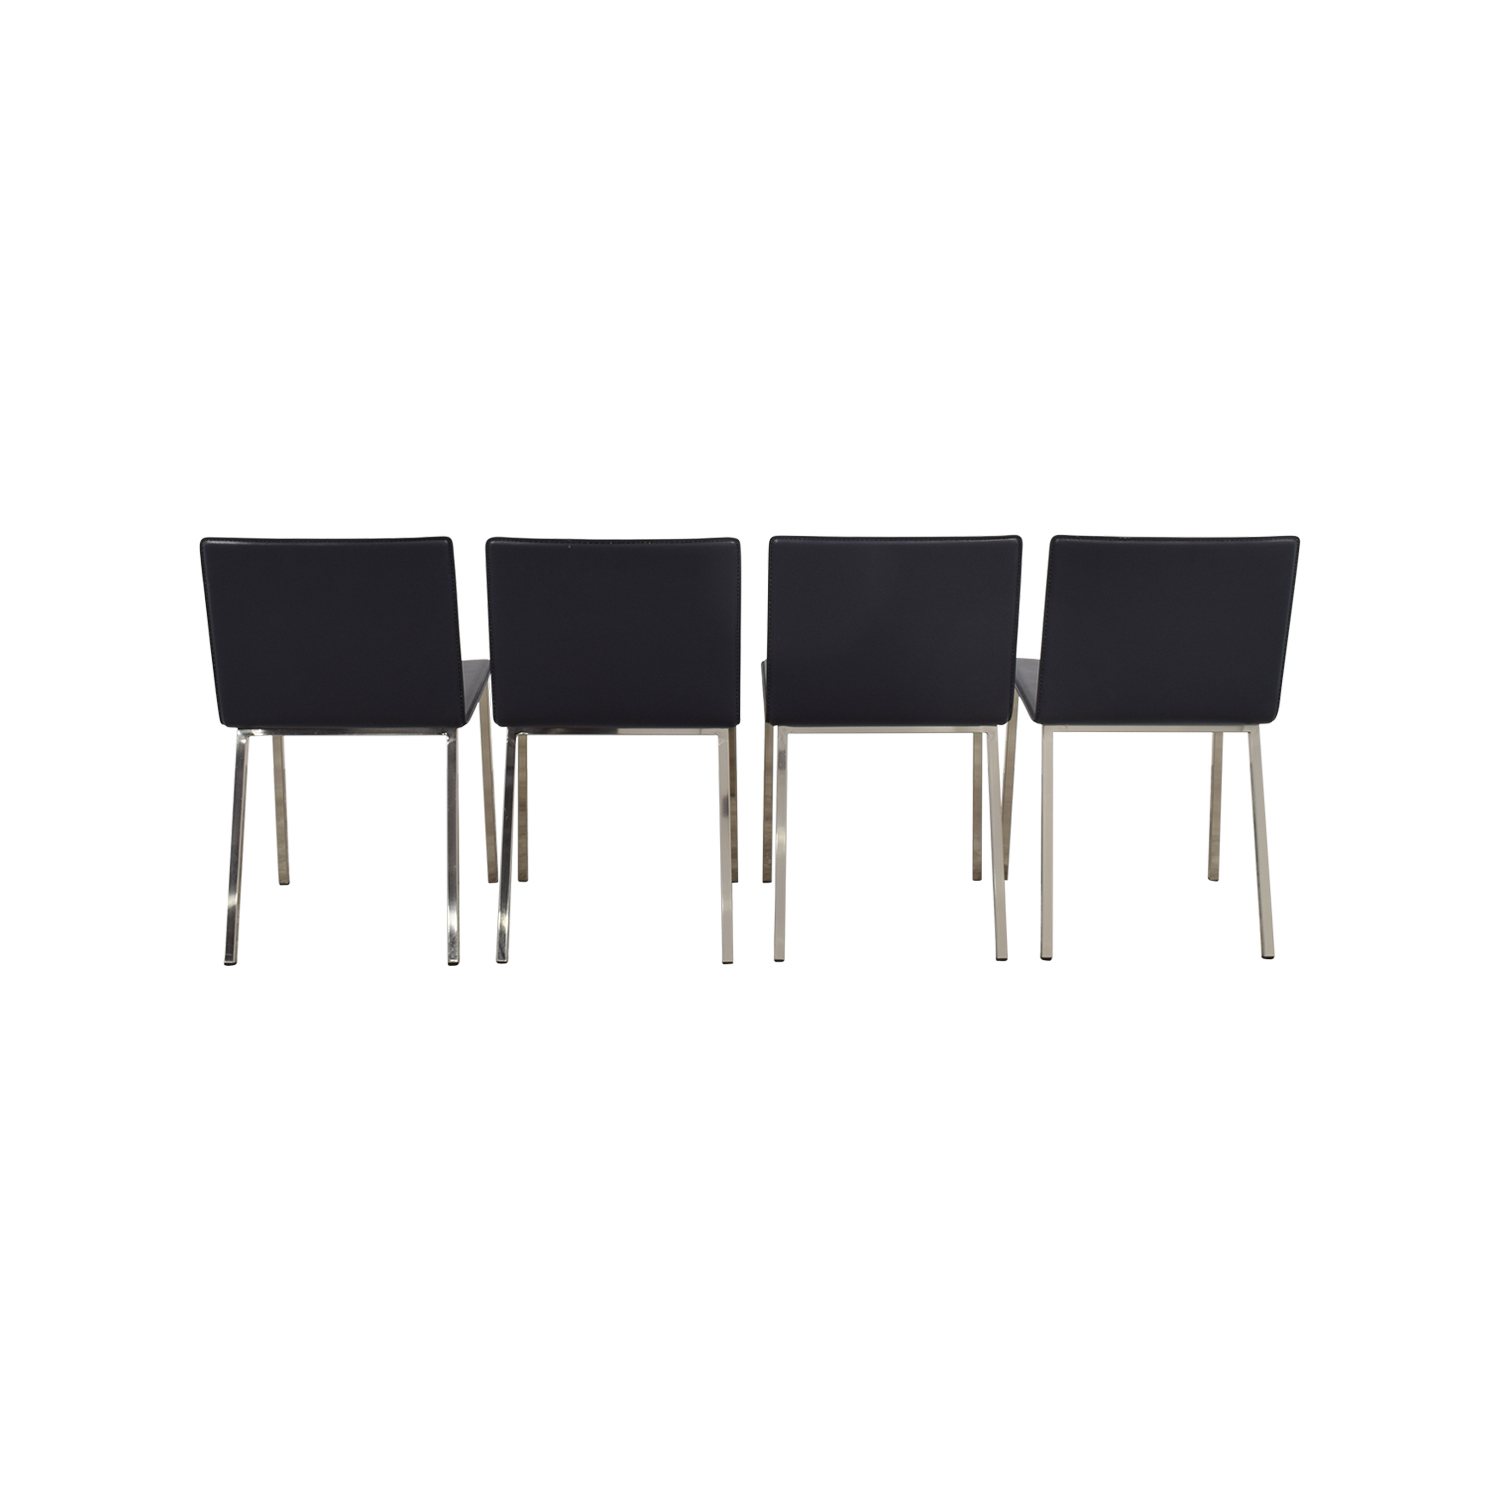 CB2 CB2 Phoenix Carbon Grey Chairs on sale